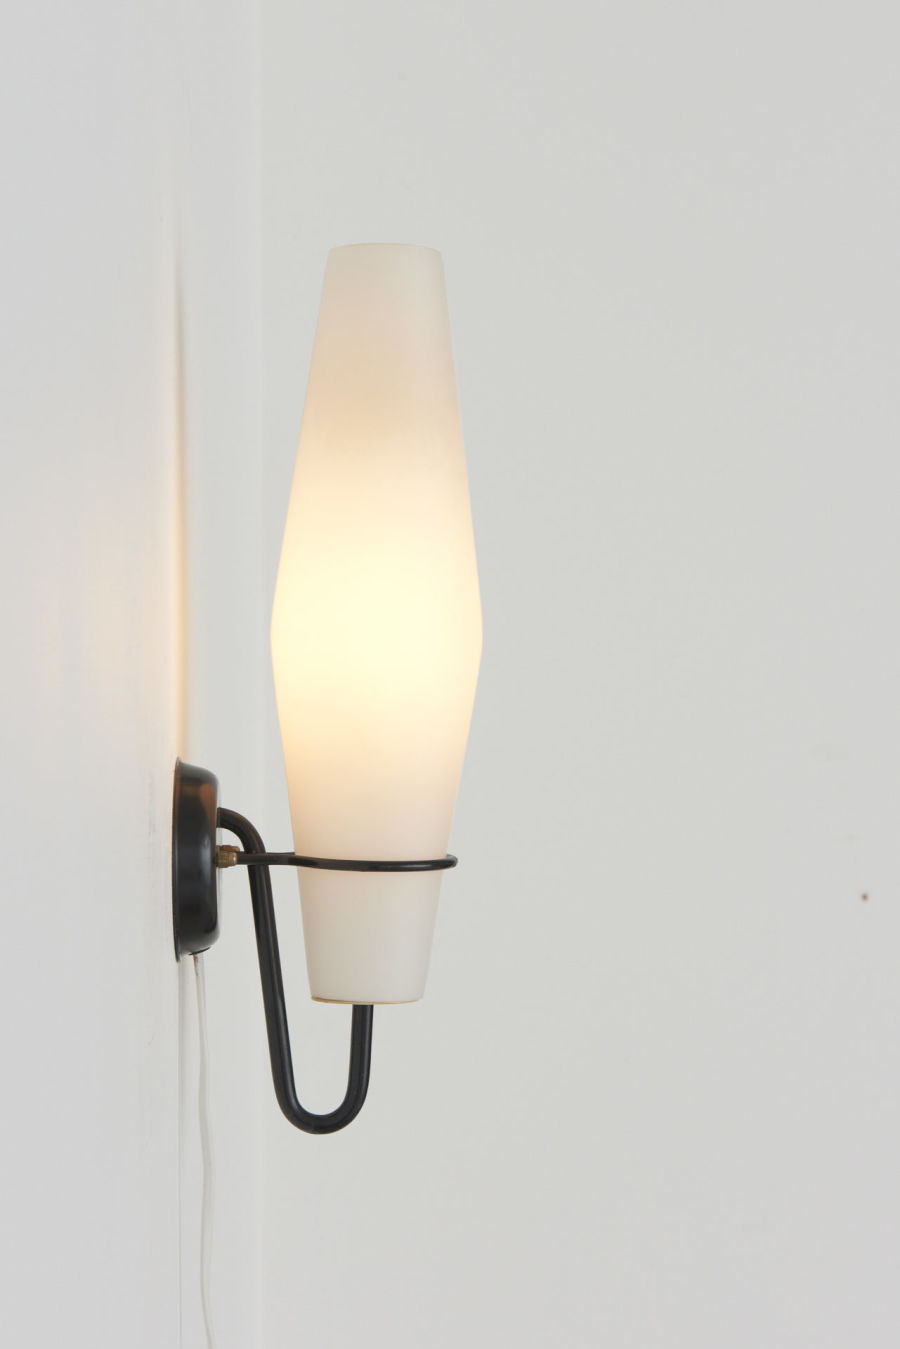 modestfurniture-vintage-2666-raak-wall-lamps-milk-glass-metal-bracket07